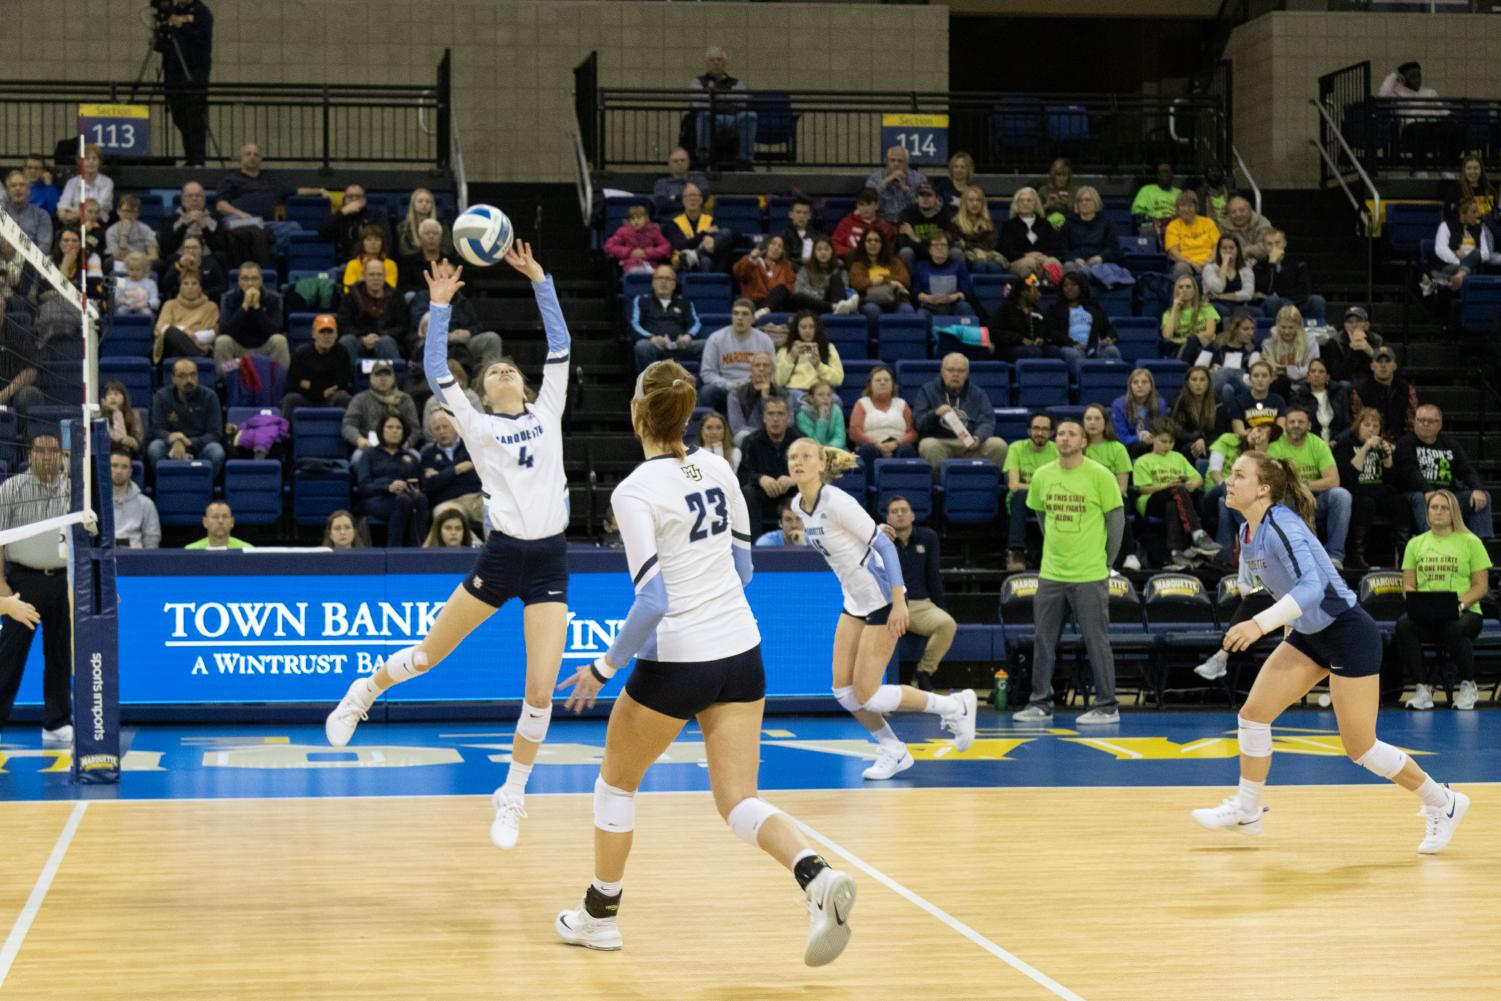 Junior setter Sarah Rose sets the ball in Marquette's win against Xavier Nov. 1 at the Al McGuire Center.